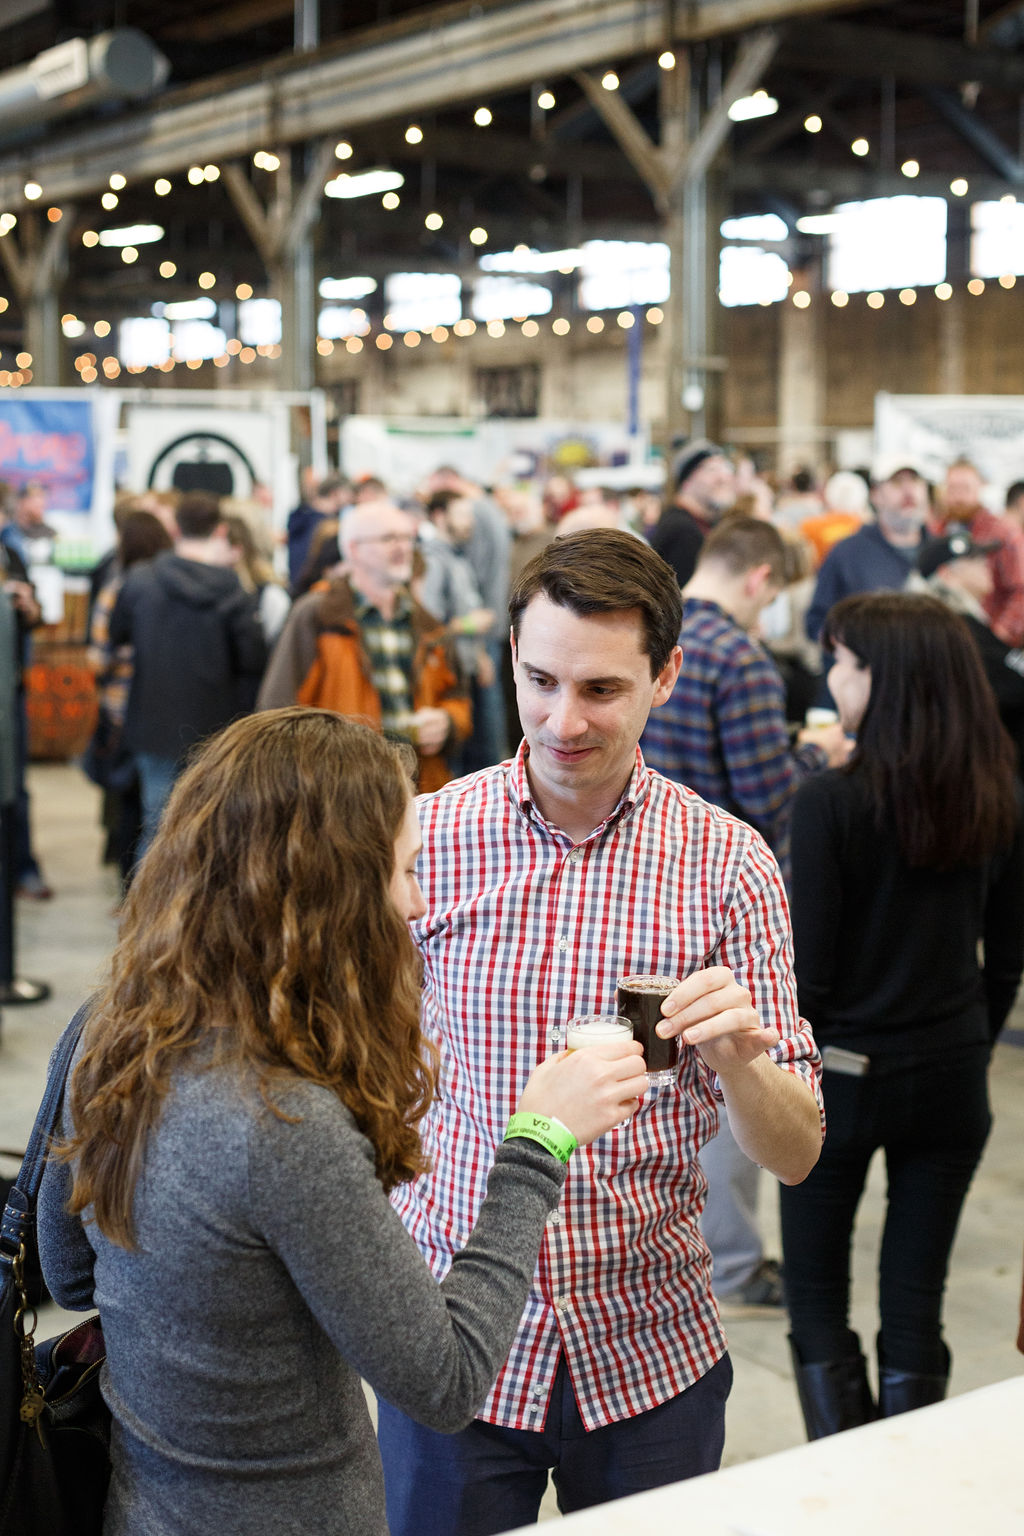 7_maine_brewers_guild_winter_session_2108_knack_factory_maine_photographer_whitney_j_fox_3217.jpg